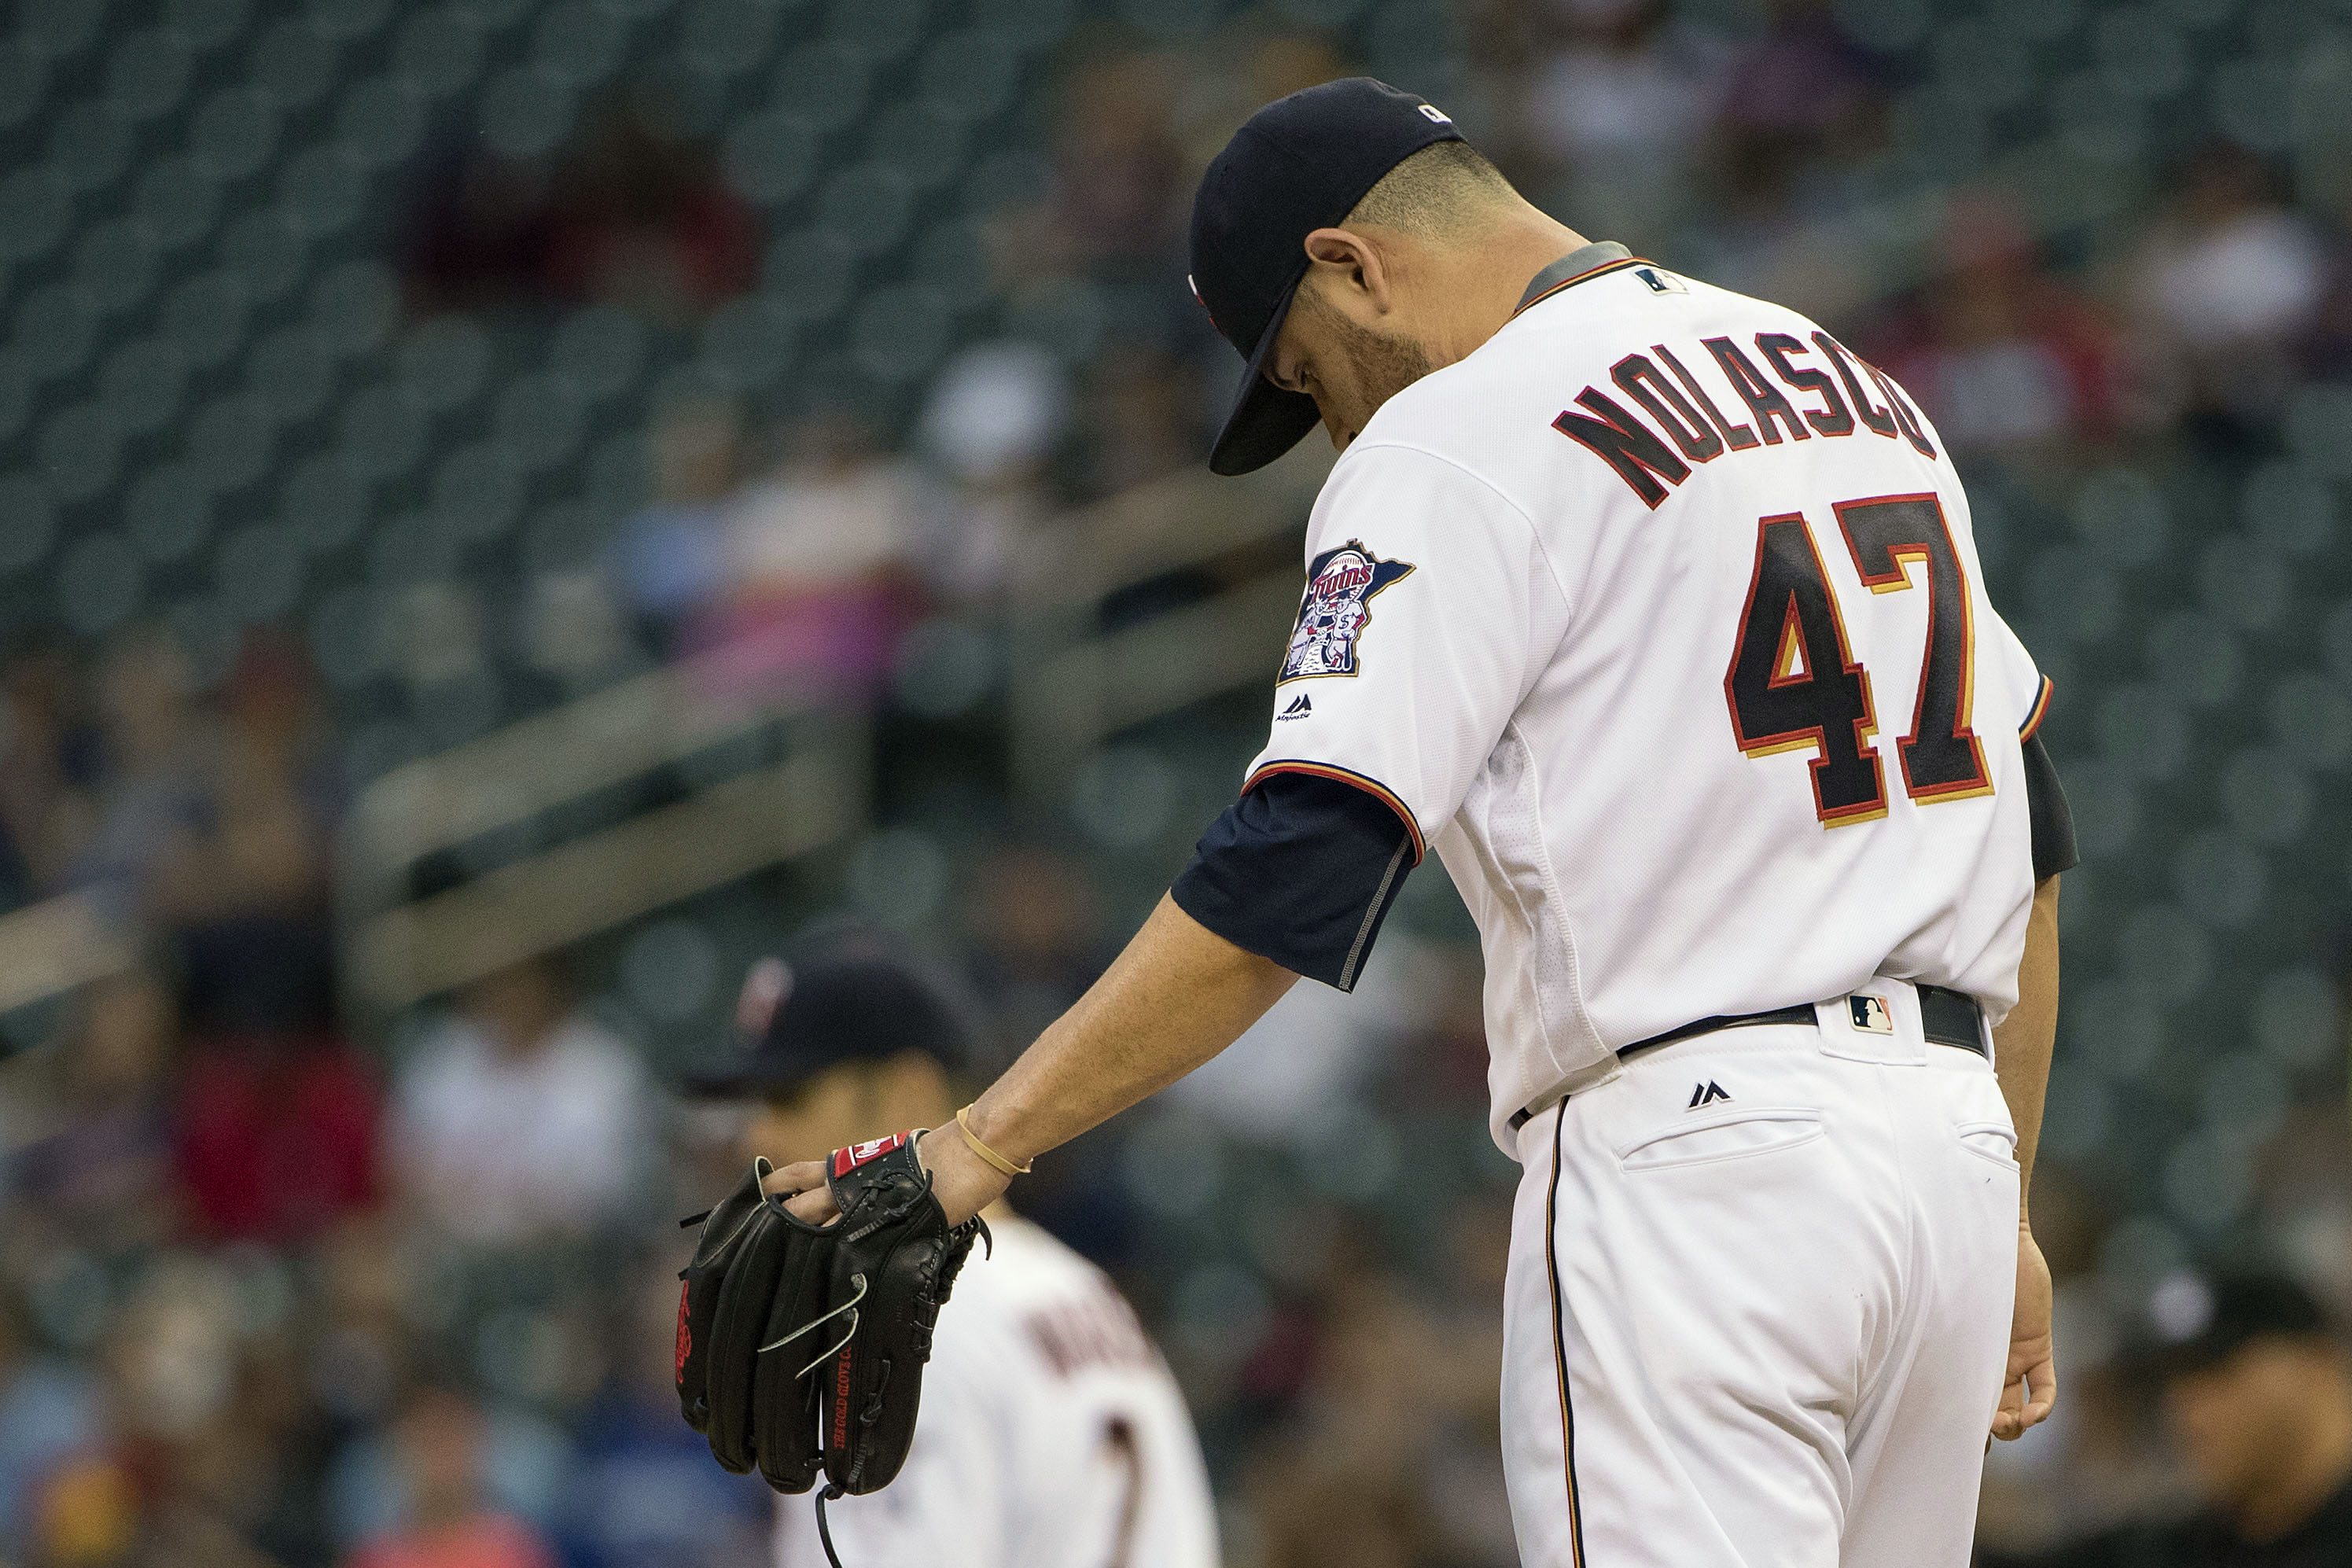 From 2014-2016, Nolasco's 5.43 ERA has under performed his 3.94 FIP by the widest margin of any starting pitcher.